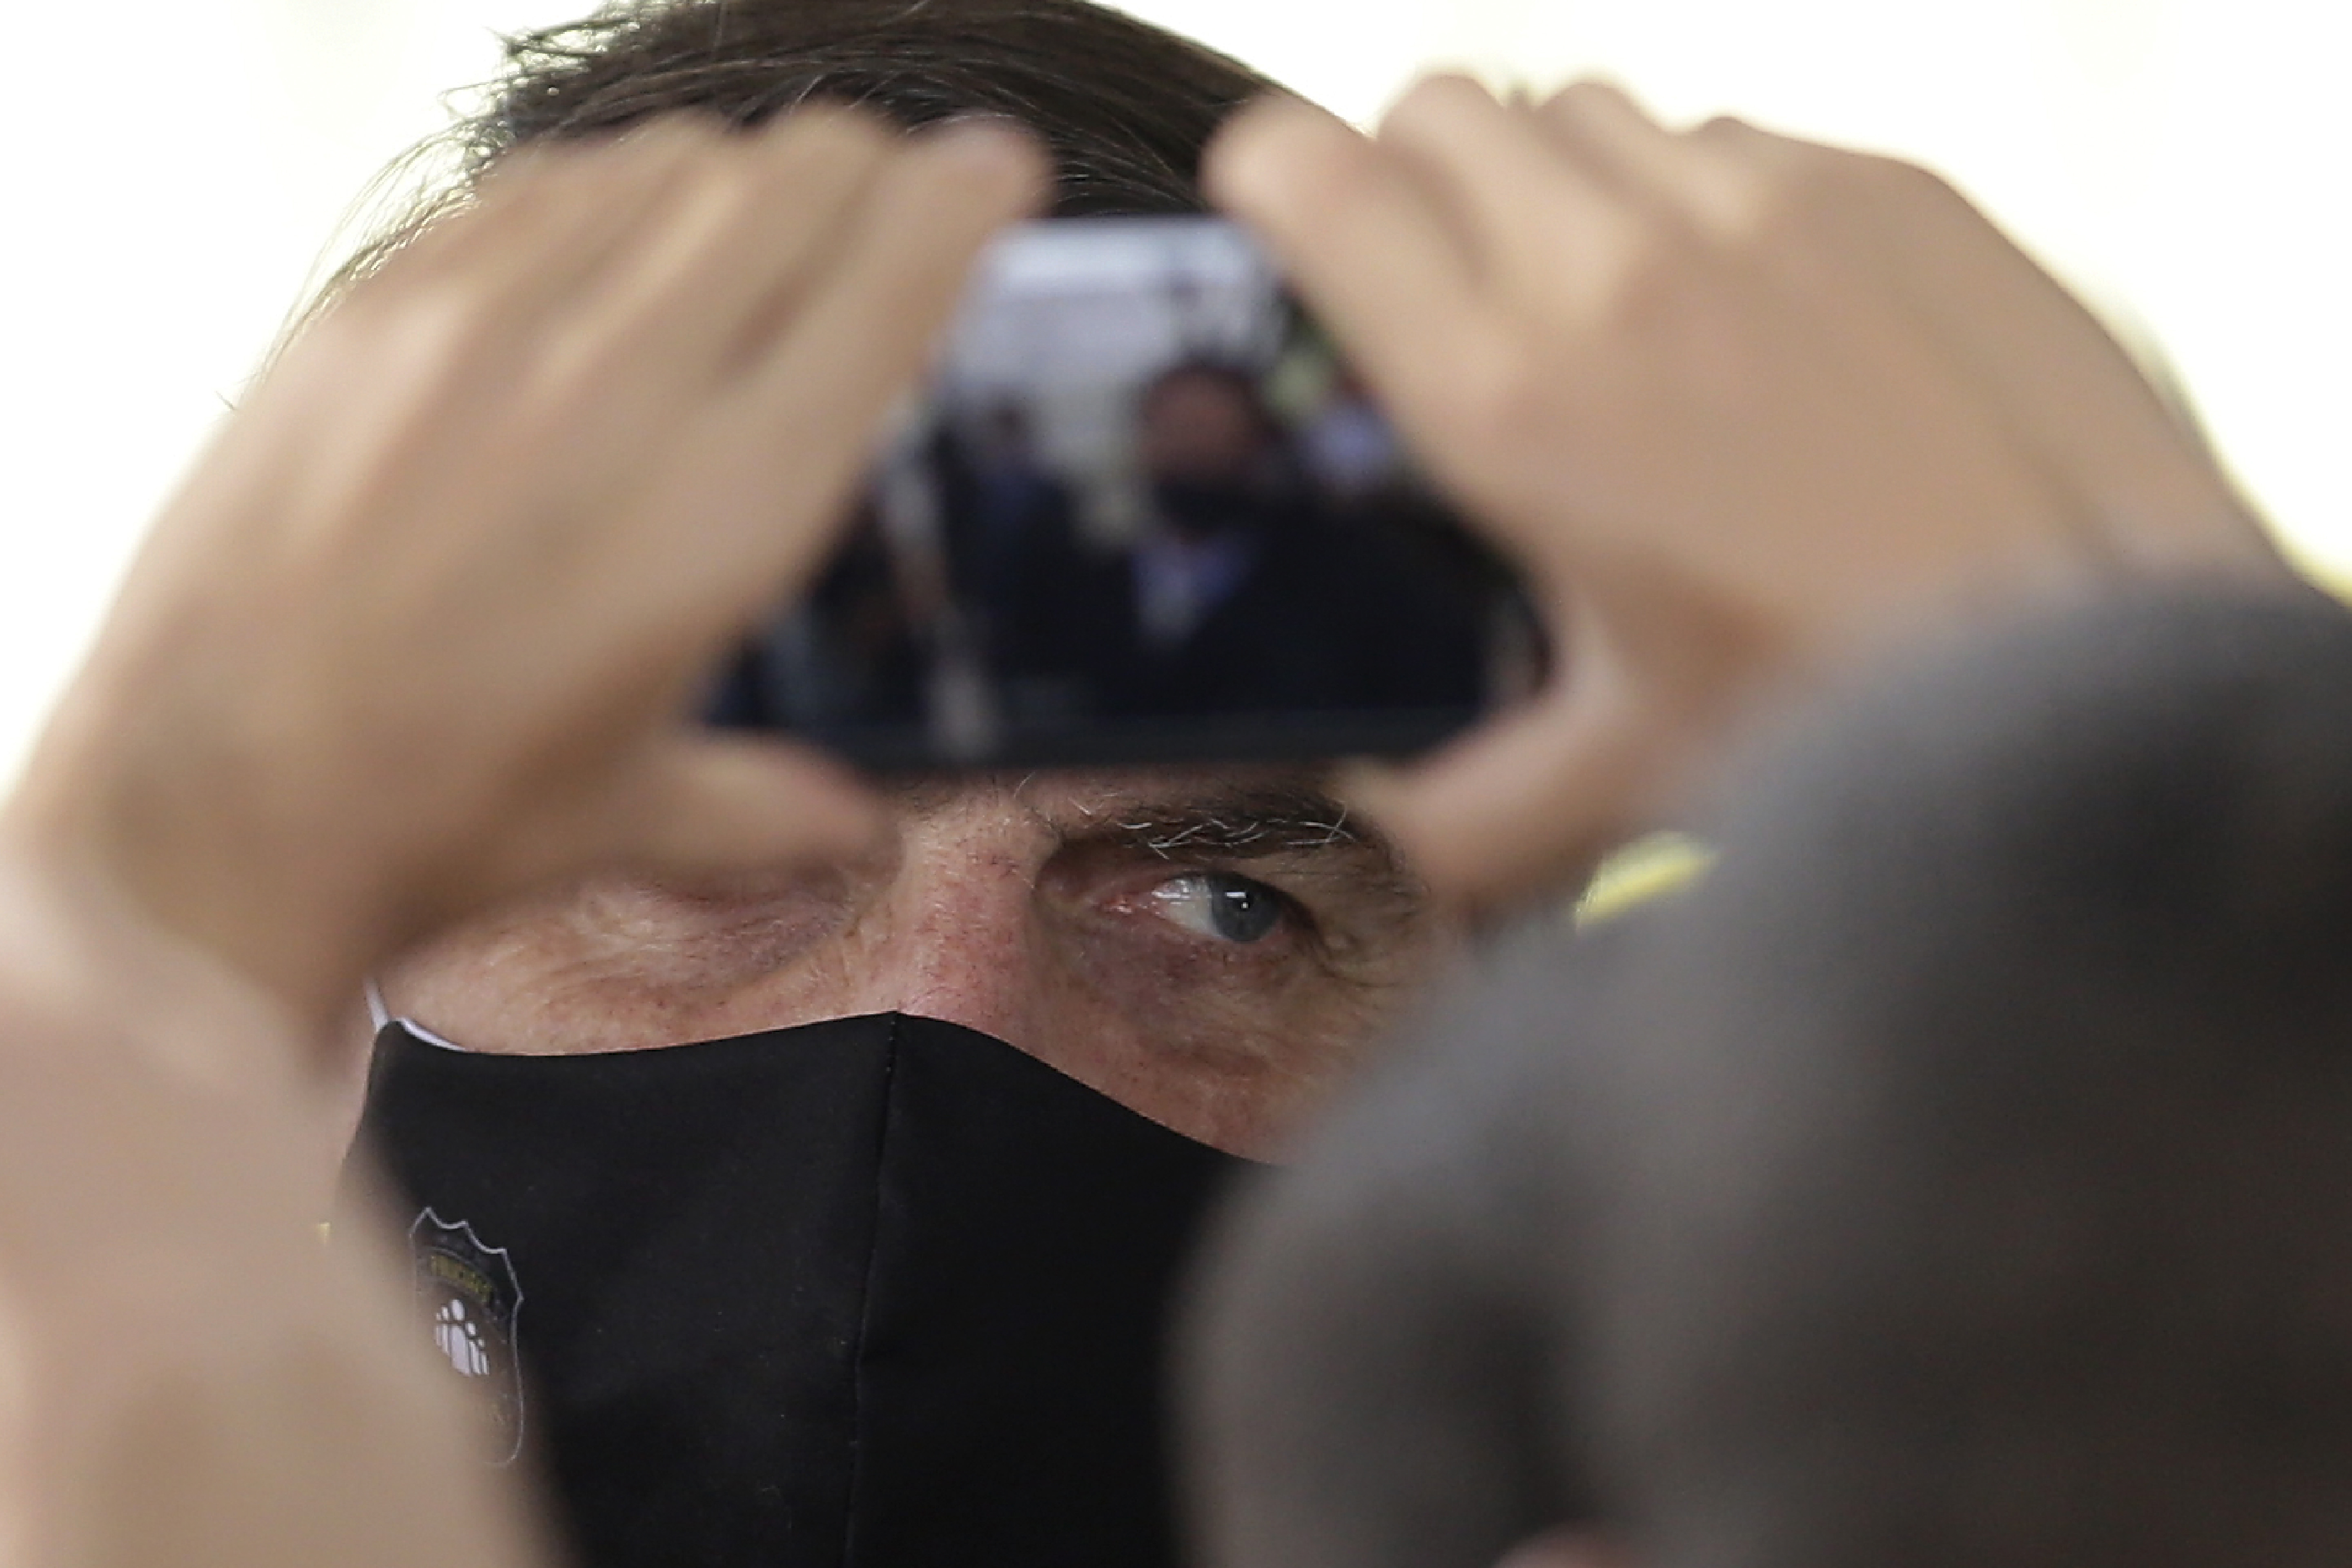 Brazil's President Jair Bolsonaro, wearing a face mask amid the new coronavirus pandemic, faces supporters taking pictures with cell phones as he leaves his official residence of Alvorada palace in Brasilia, Brazil, Monday, May 25, 2020. (AP Photo/Eraldo Peres)